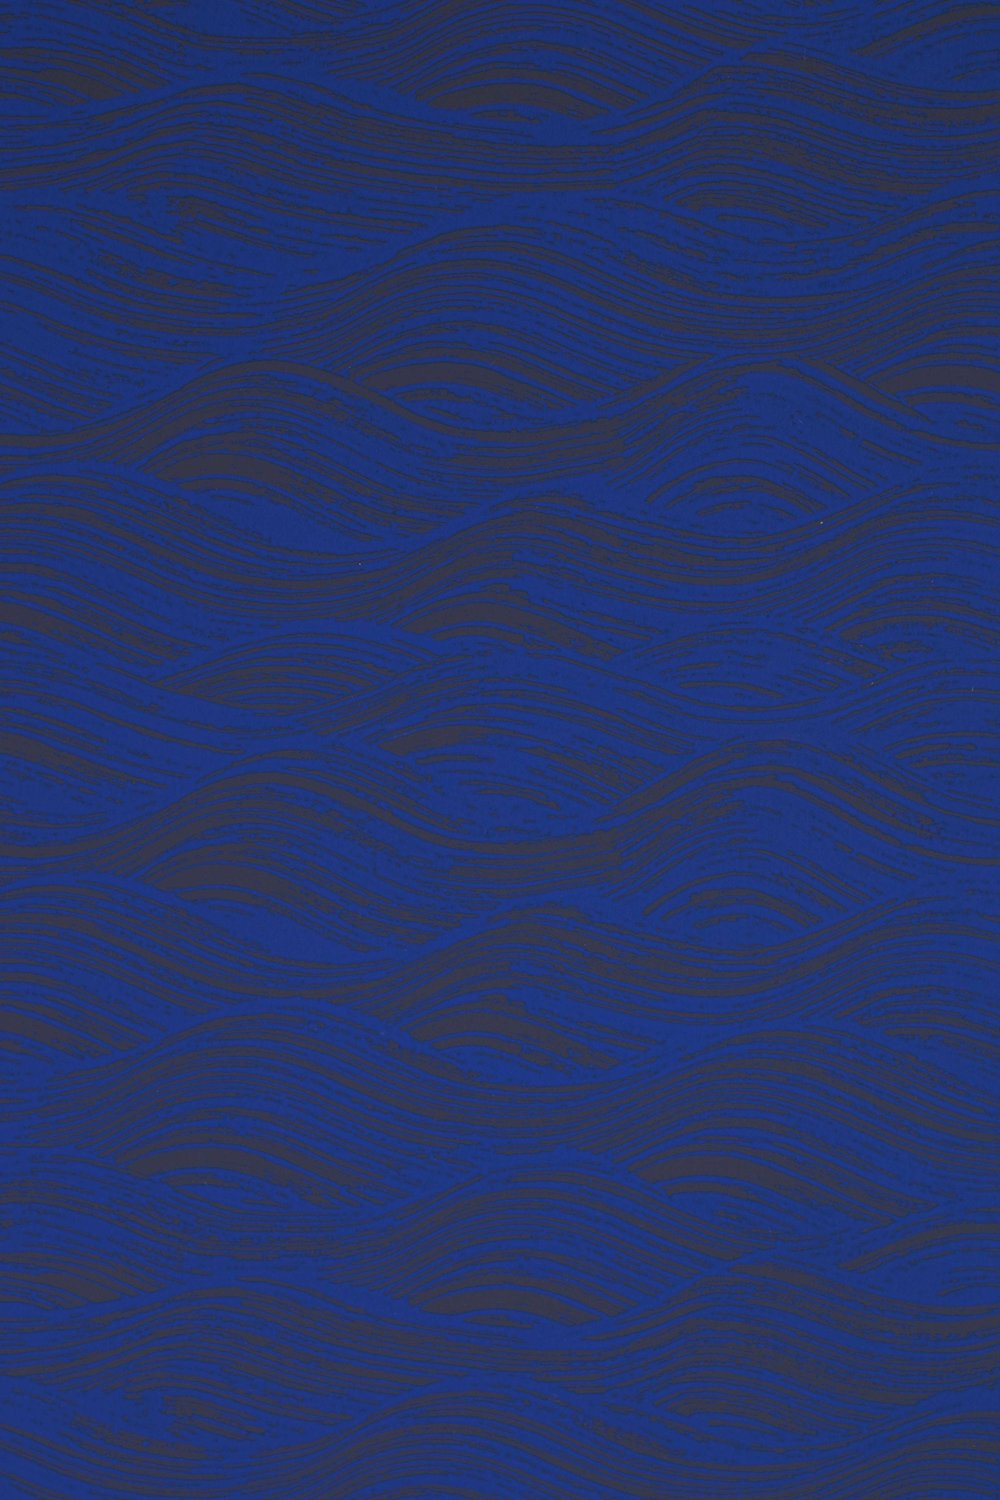 Painted Wave in Ultramarine, SL160-06